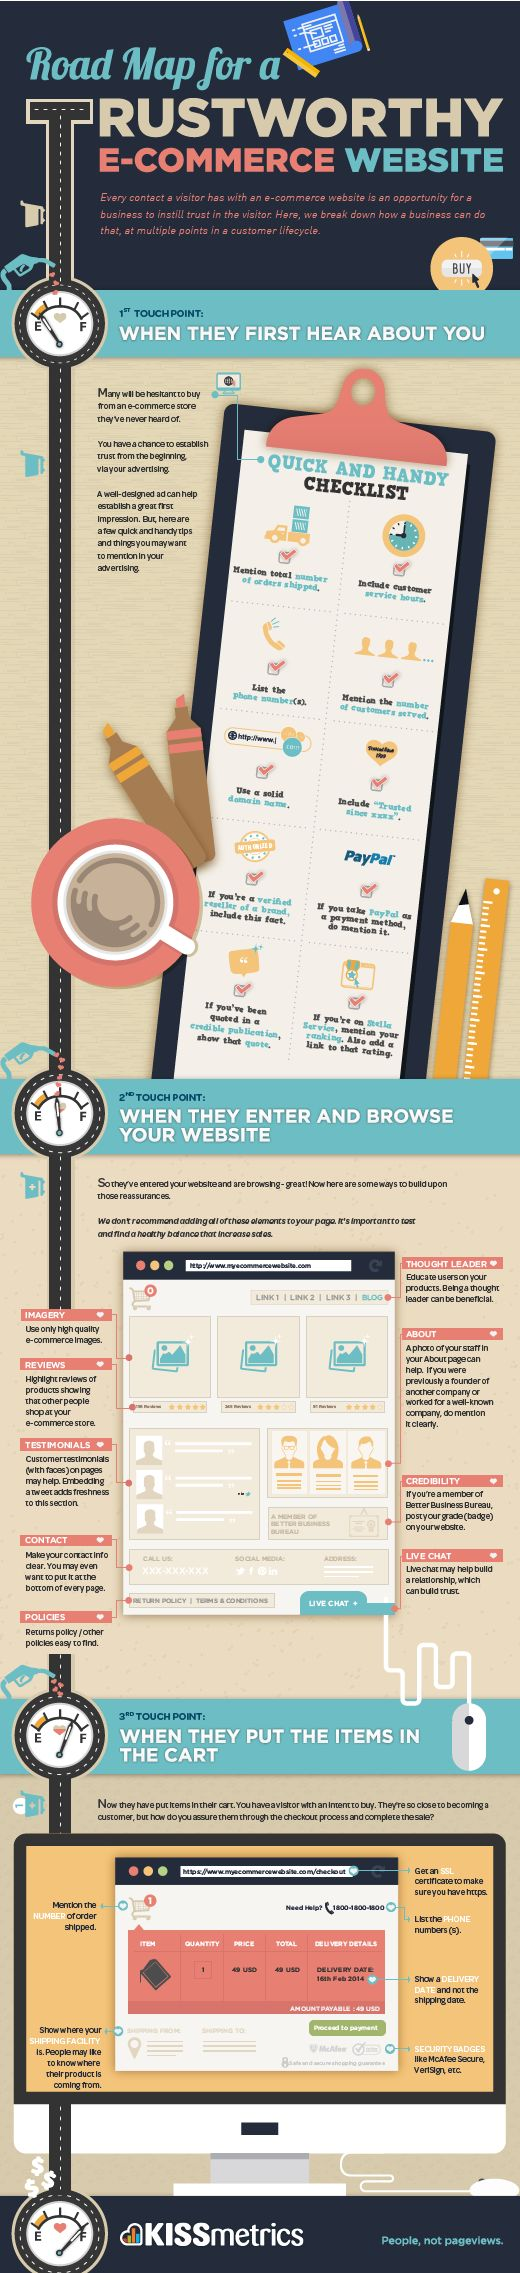 Infographic: Roadmap for a Trustworthy E-Commerce Website